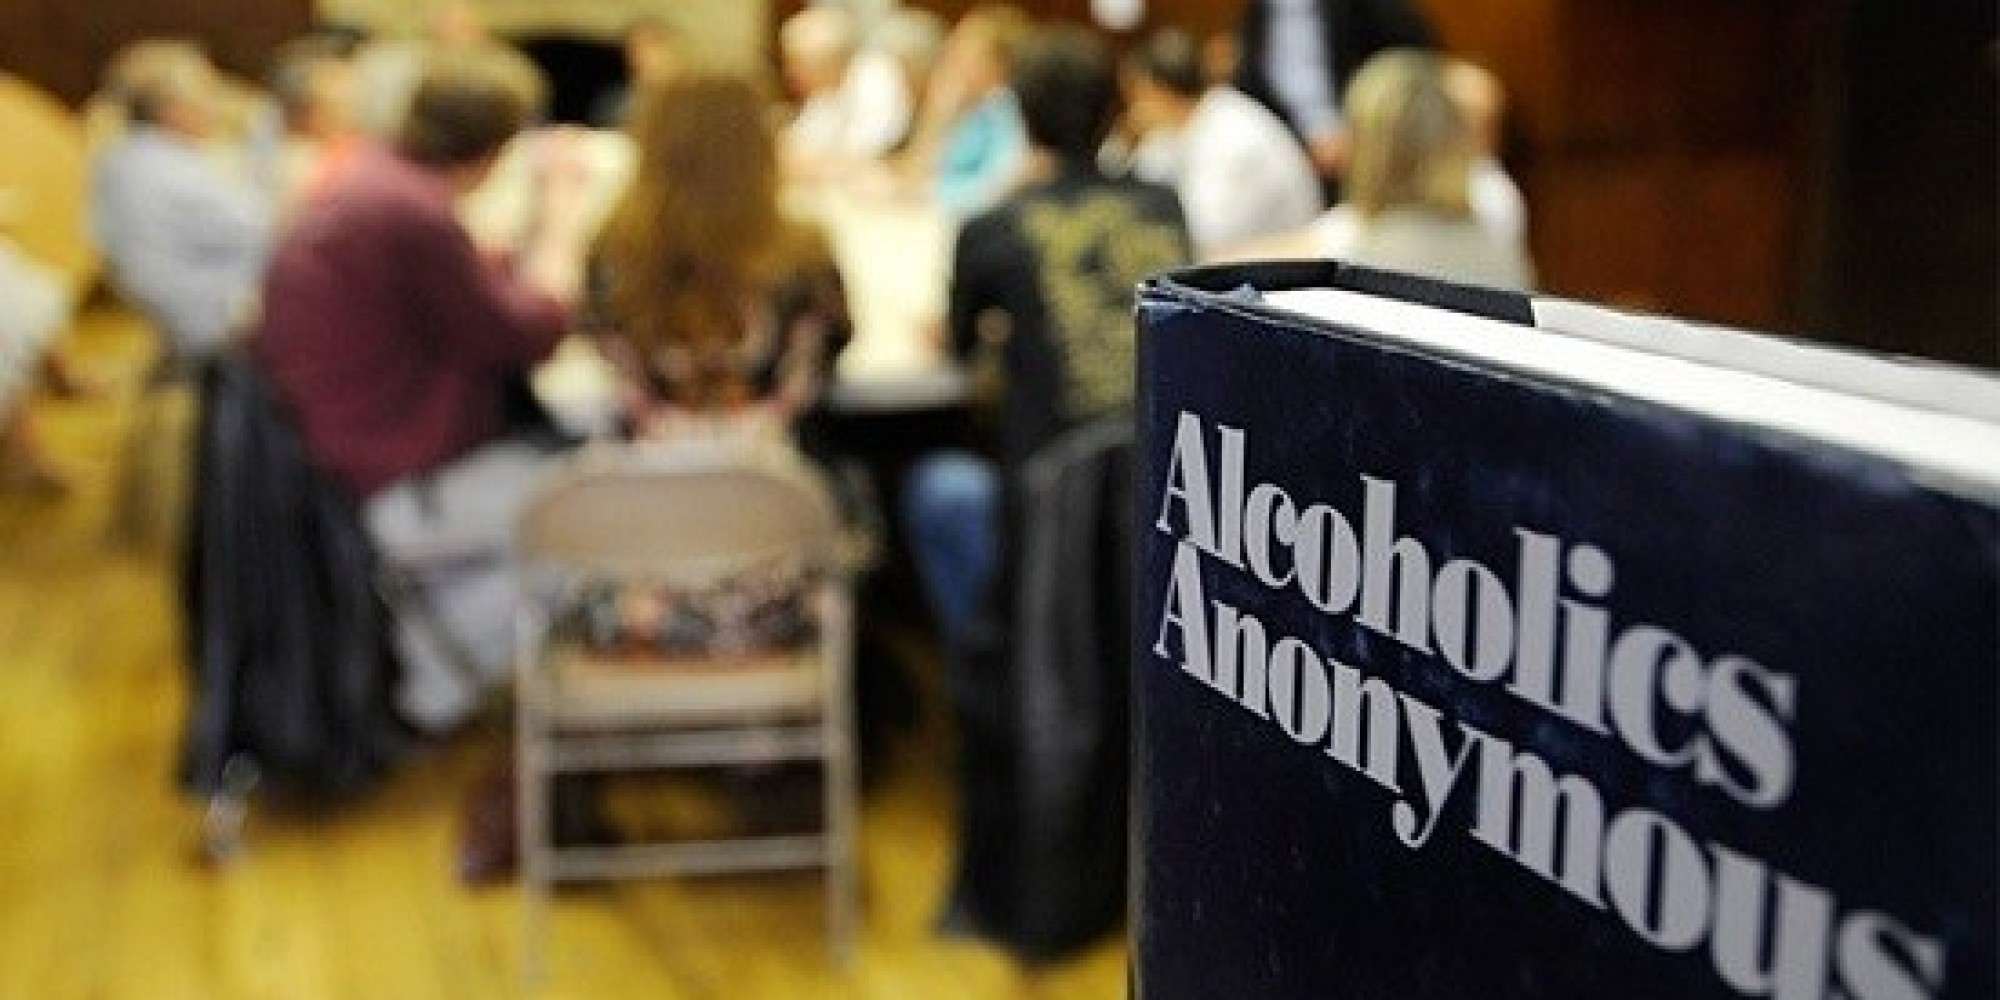 Alcoholics anonymous dating app